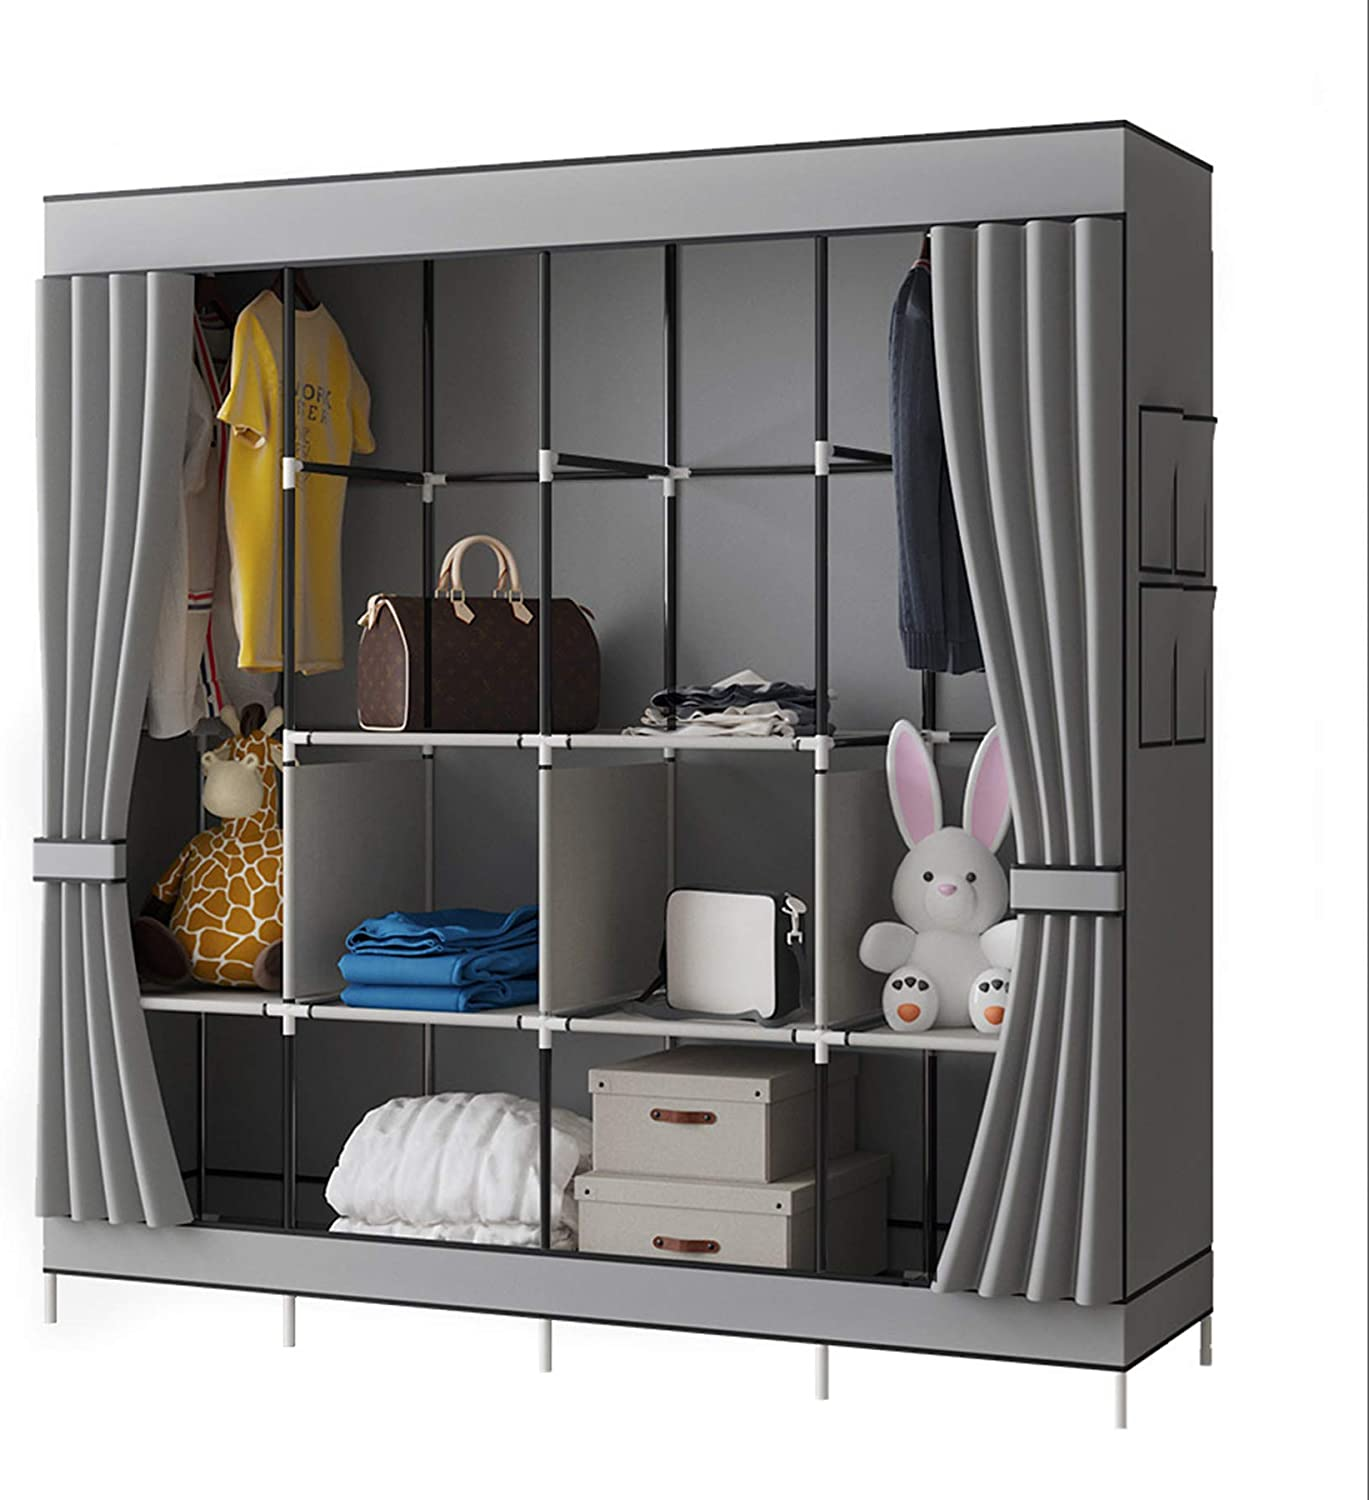 Triple Canvas Wardrobe Hanging Clothes Cupboard Rail Storage Organiser Shelves